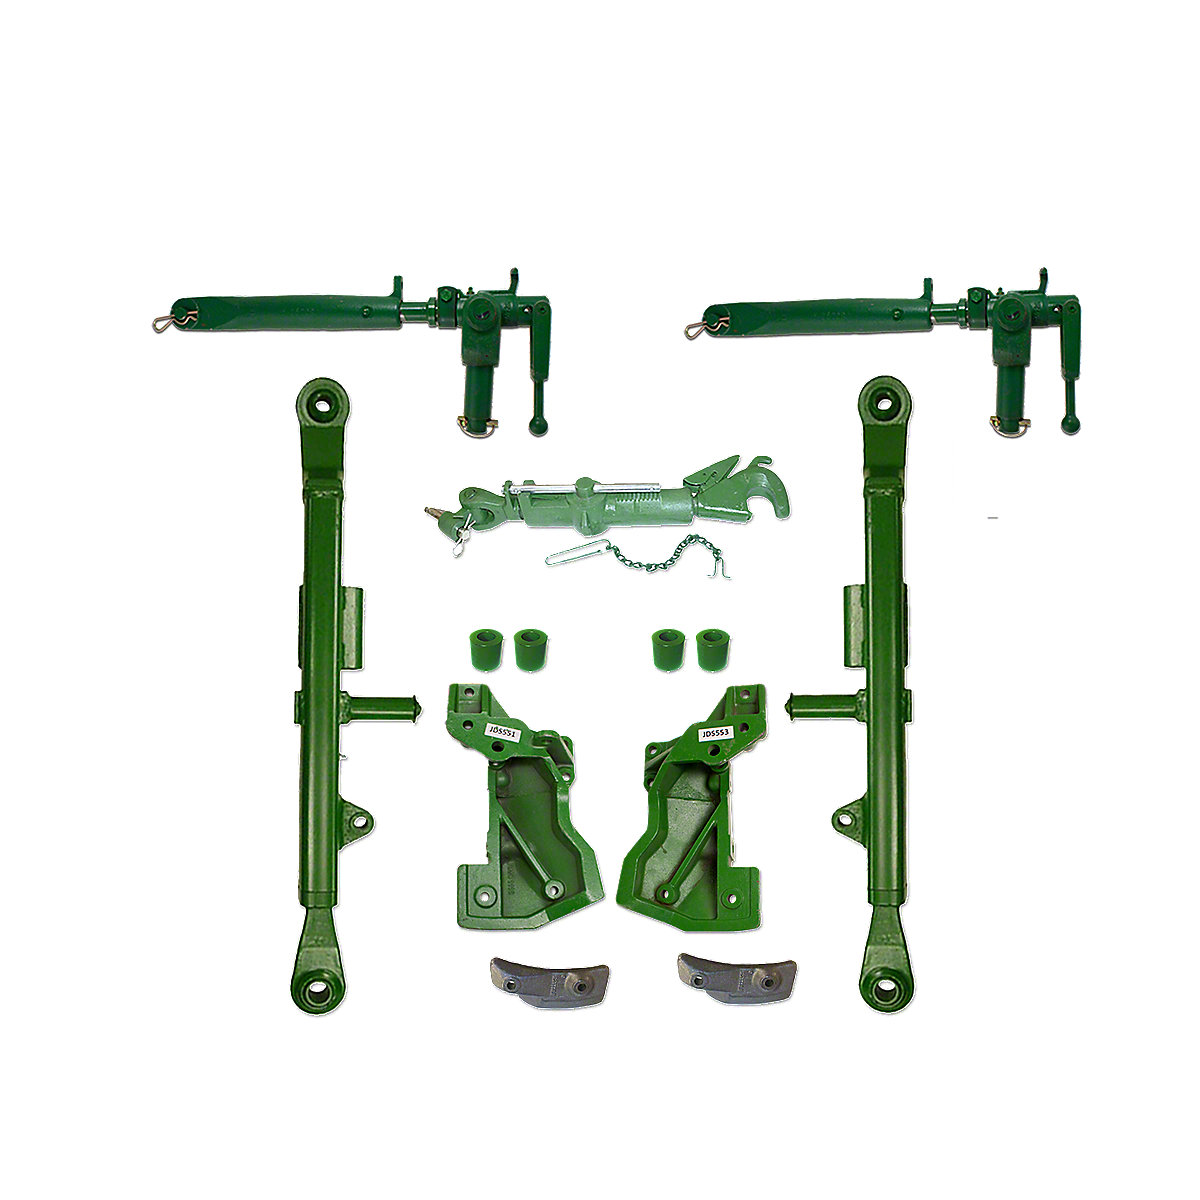 Ih 340 Tractor 3pt Telescoping Lift Arms : Jds john deere oem style point hitch kit